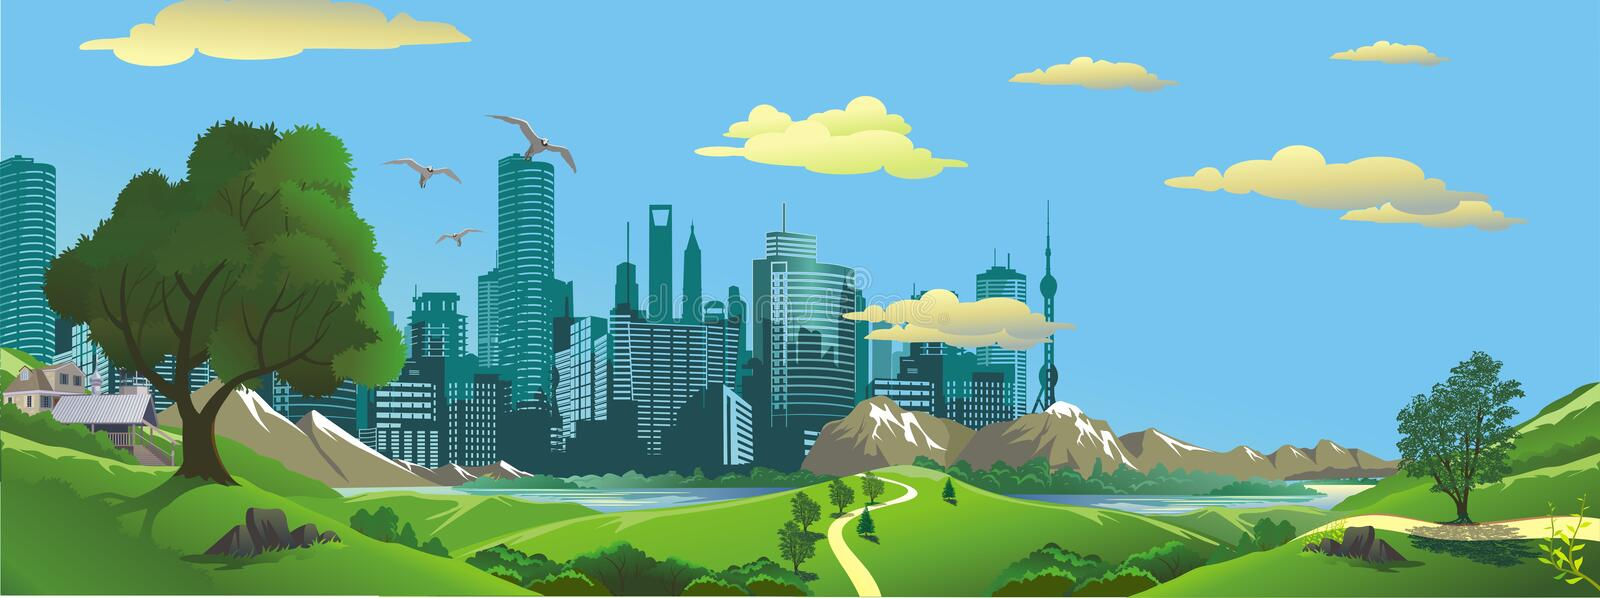 Landscape - the view from the hill to the modern city. royalty free illustration